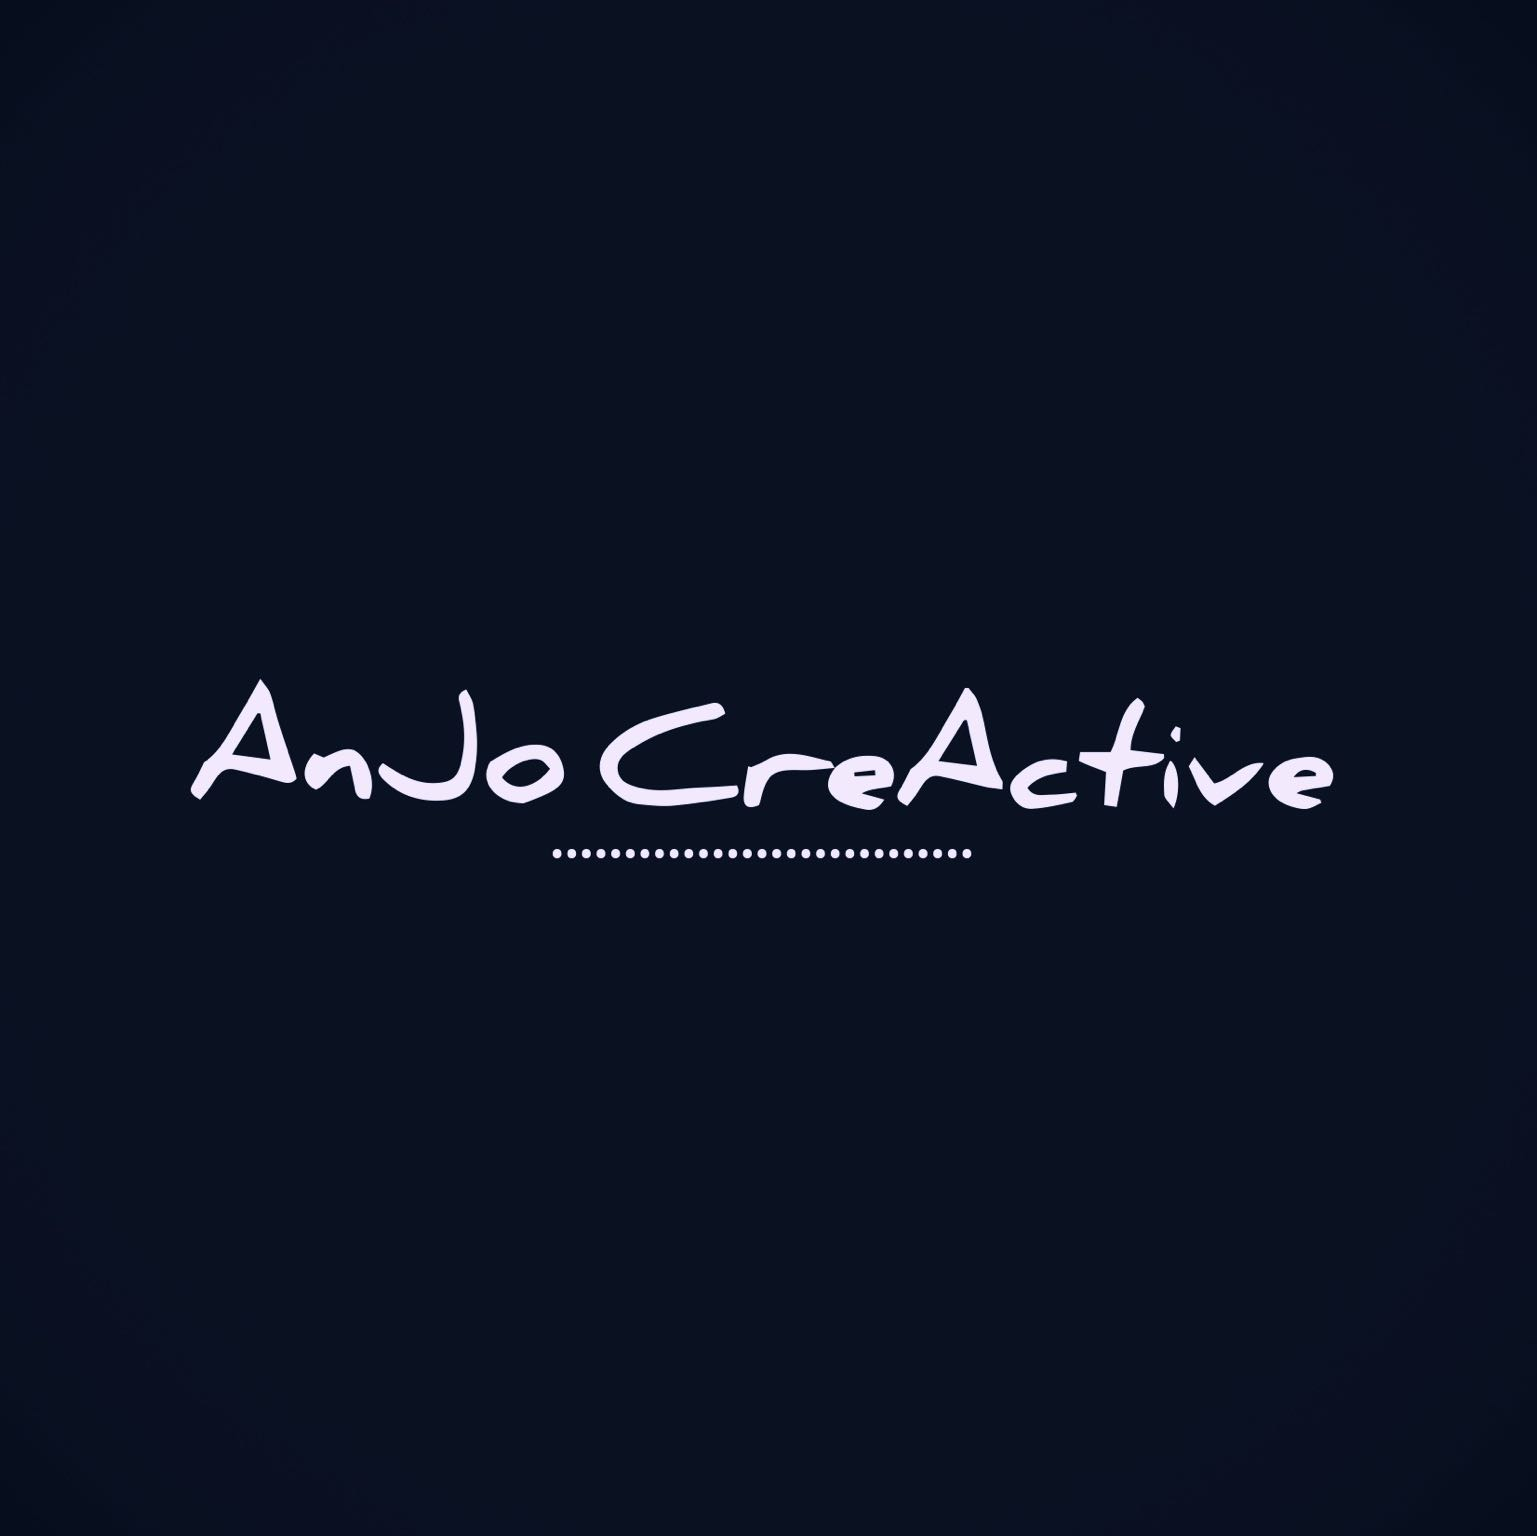 anjocreactive